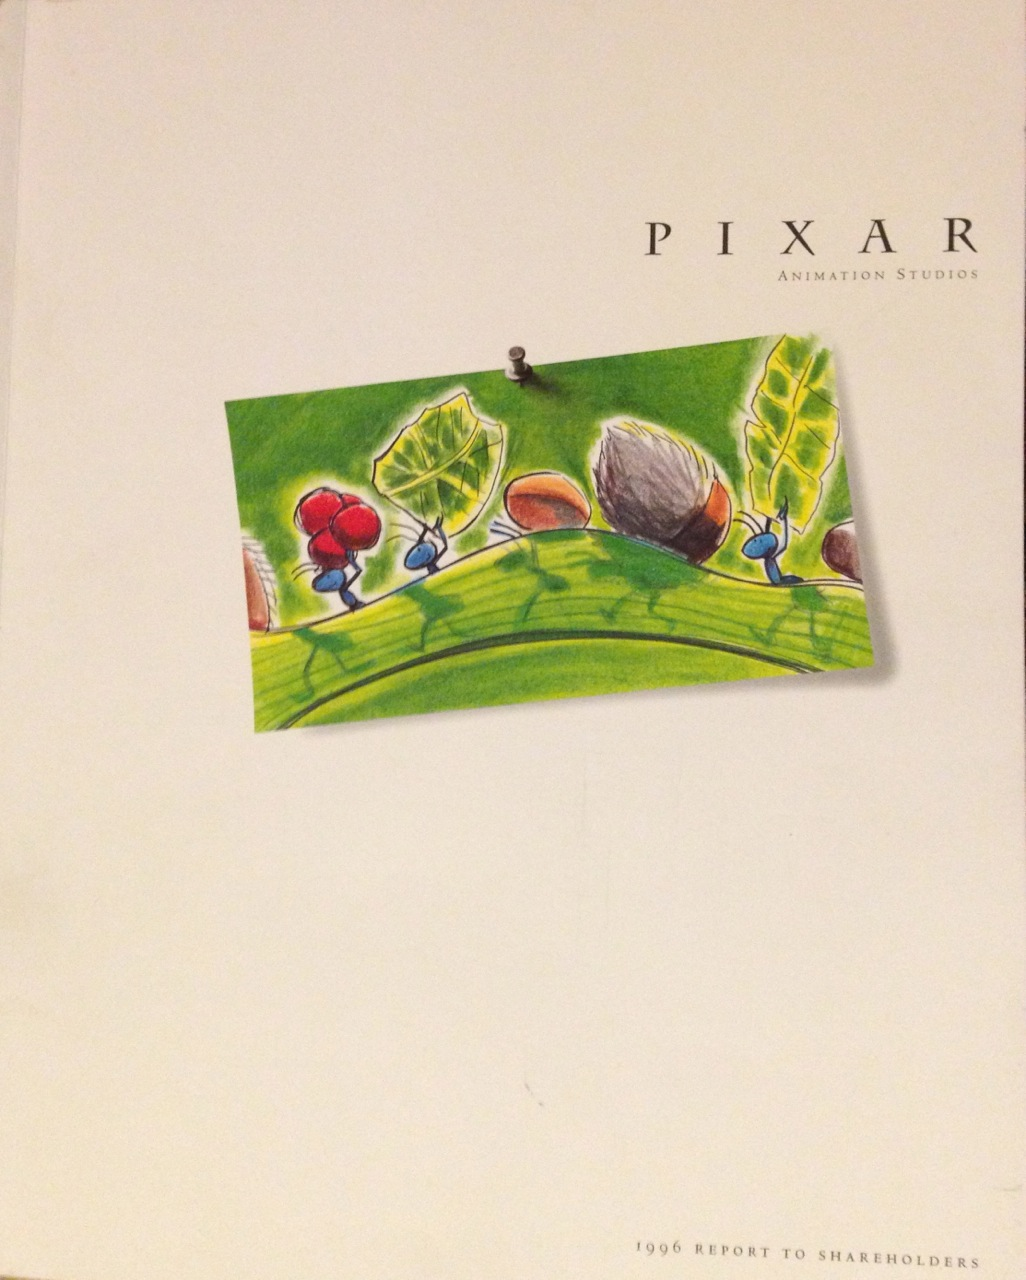 This Day In Pixar: This Day in Pixar History: Pixar 1996 Annual Report